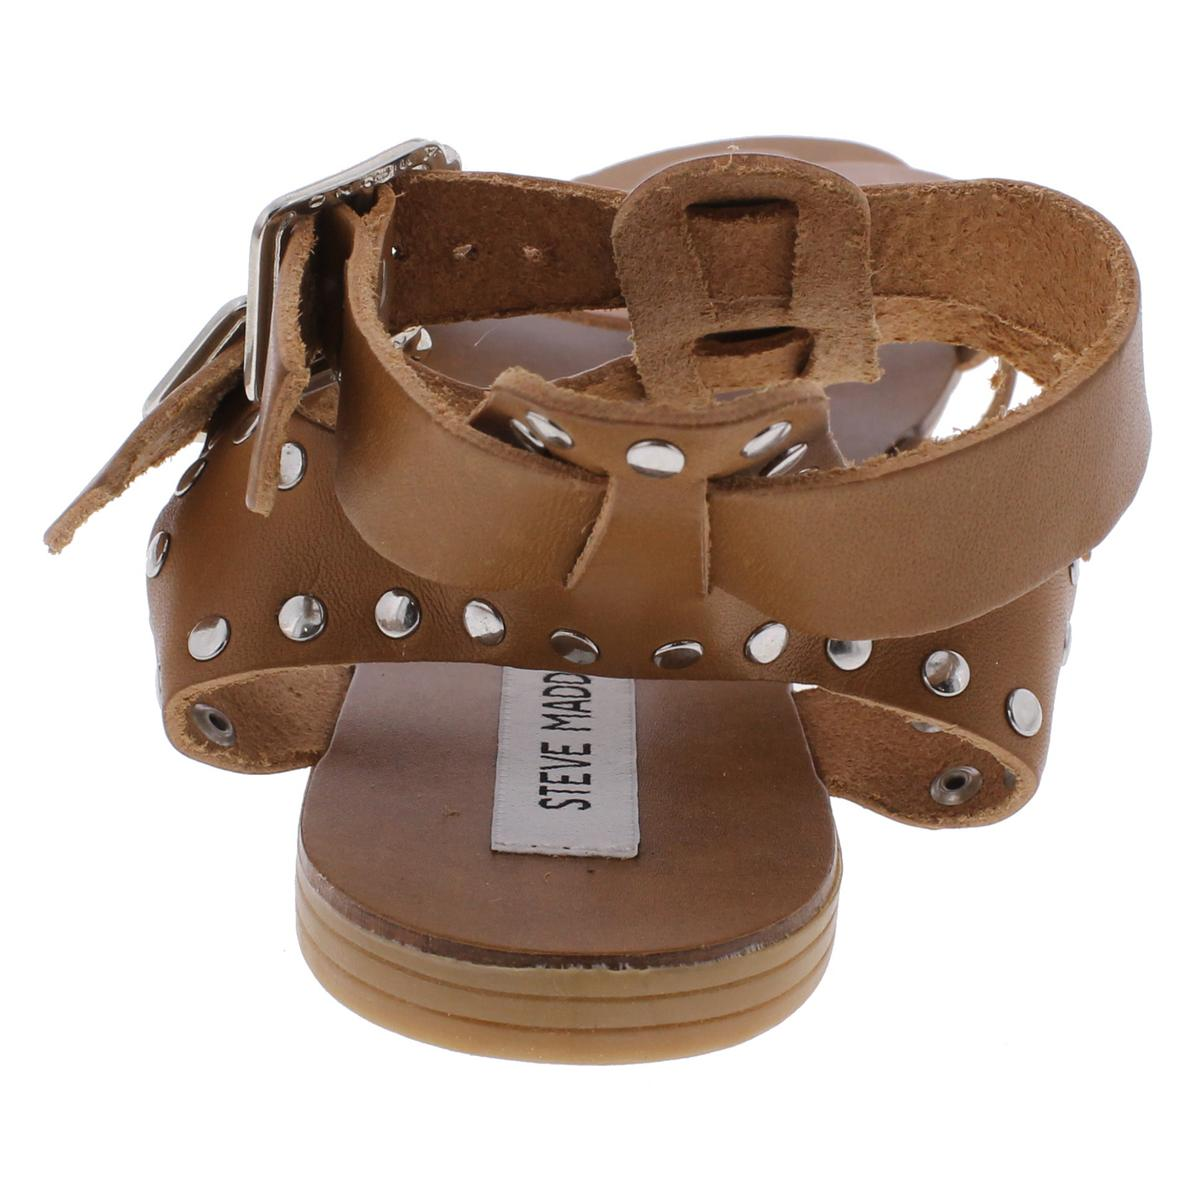 Steve-Madden-Womens-Lucy-Open-Toe-Studded-Strappy-Dress-Sandals-Shoes-BHFO-1682 thumbnail 11